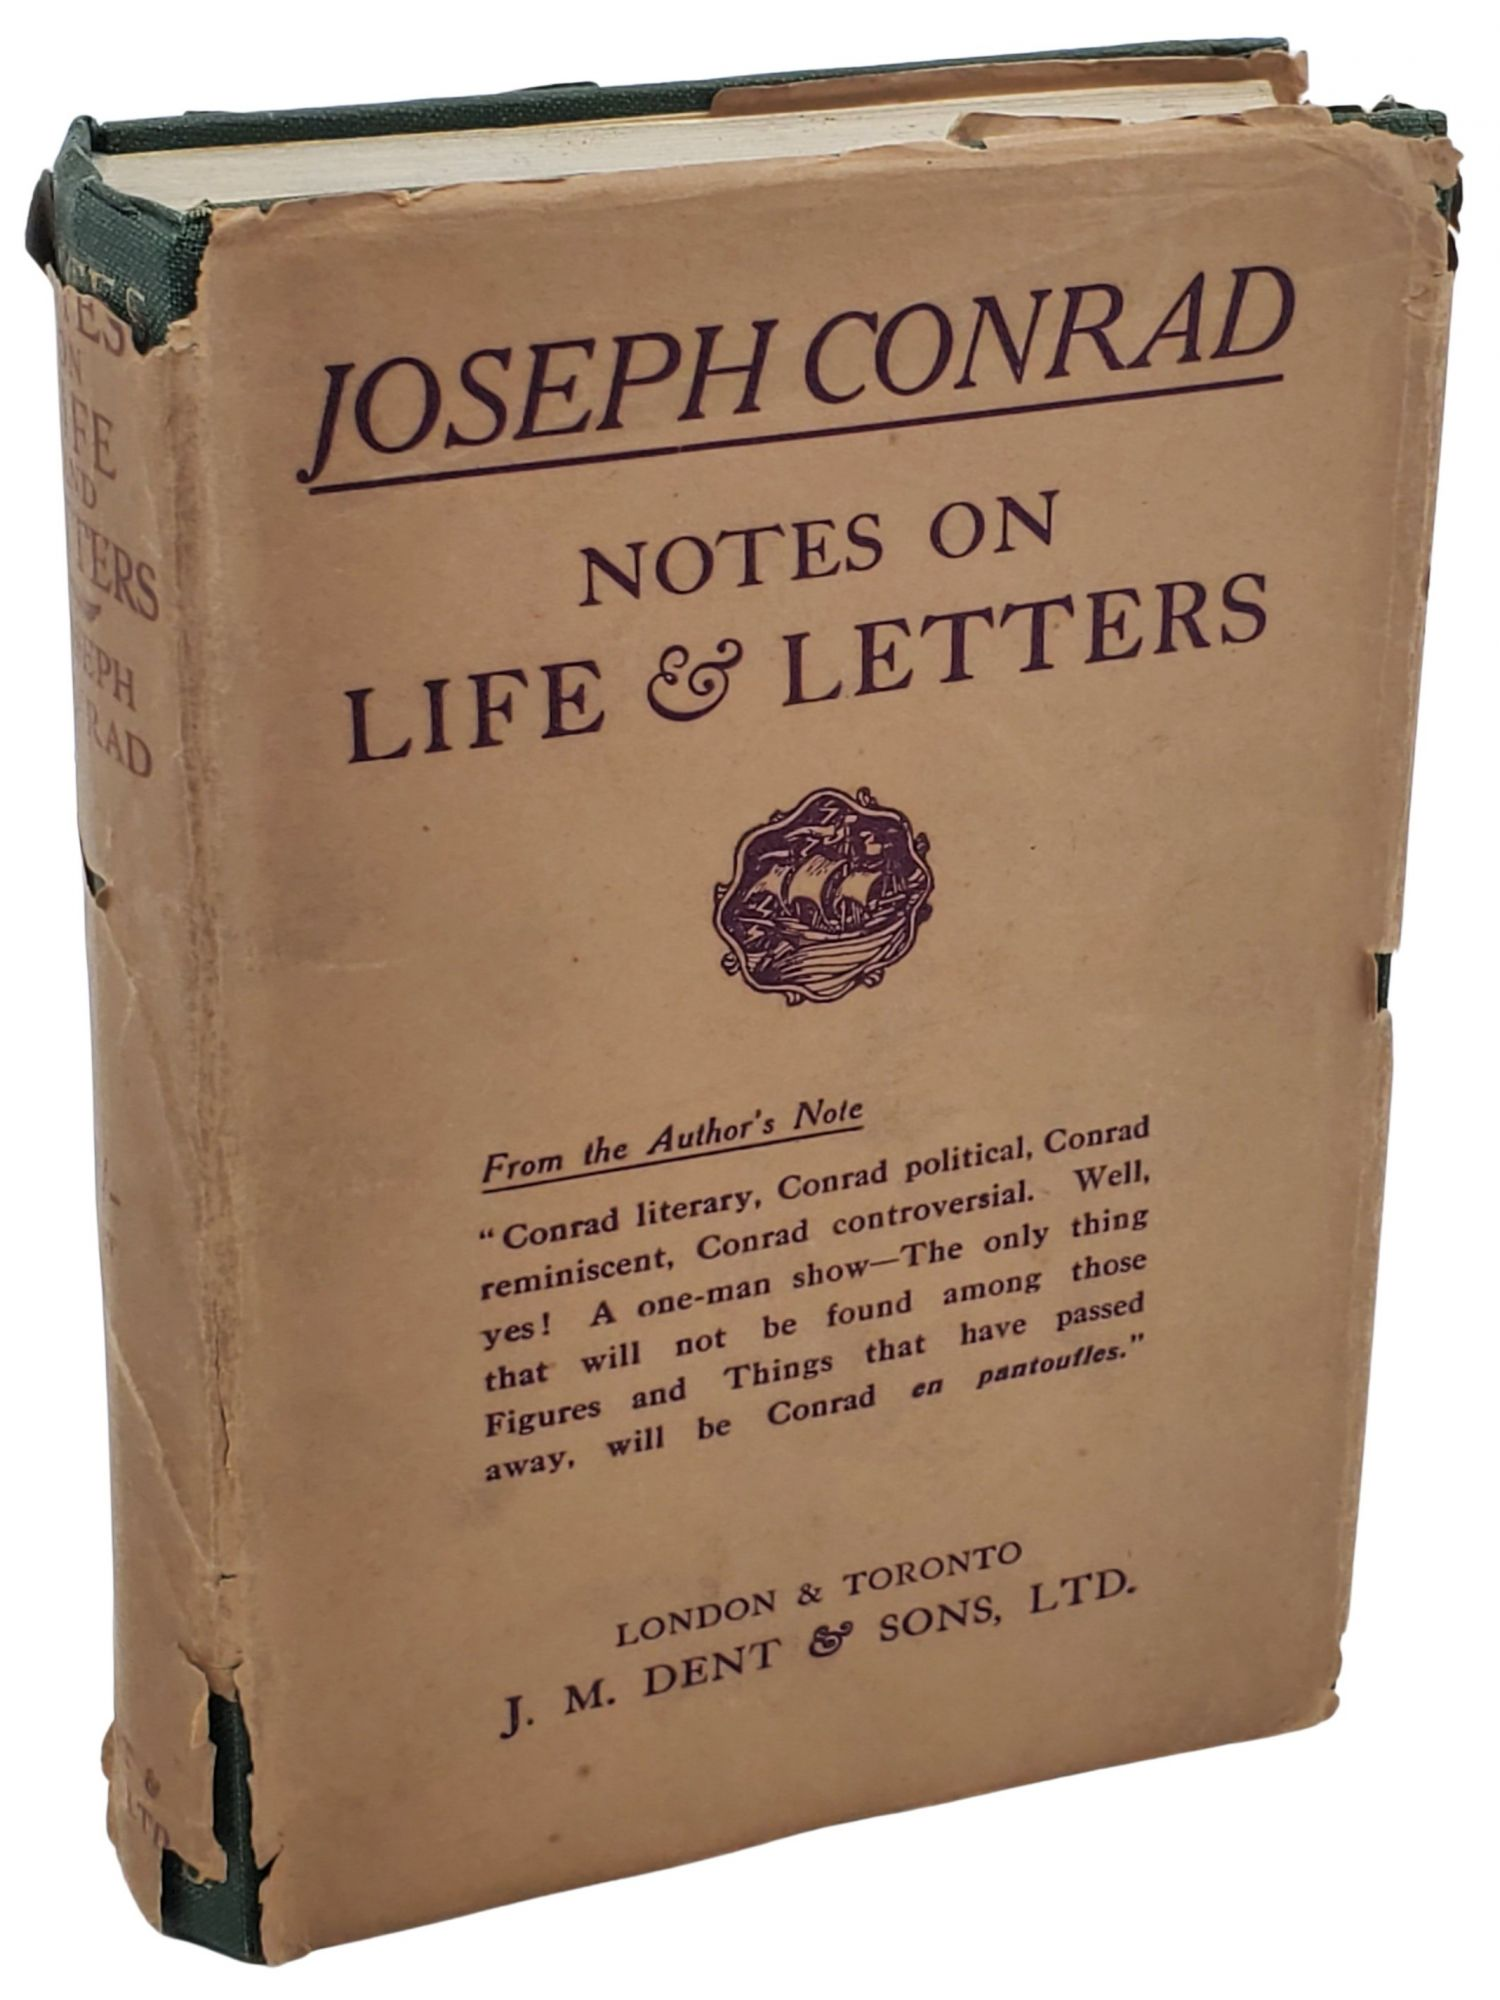 NOTES ON LIFE & LETTERS. Joesph Conrad.